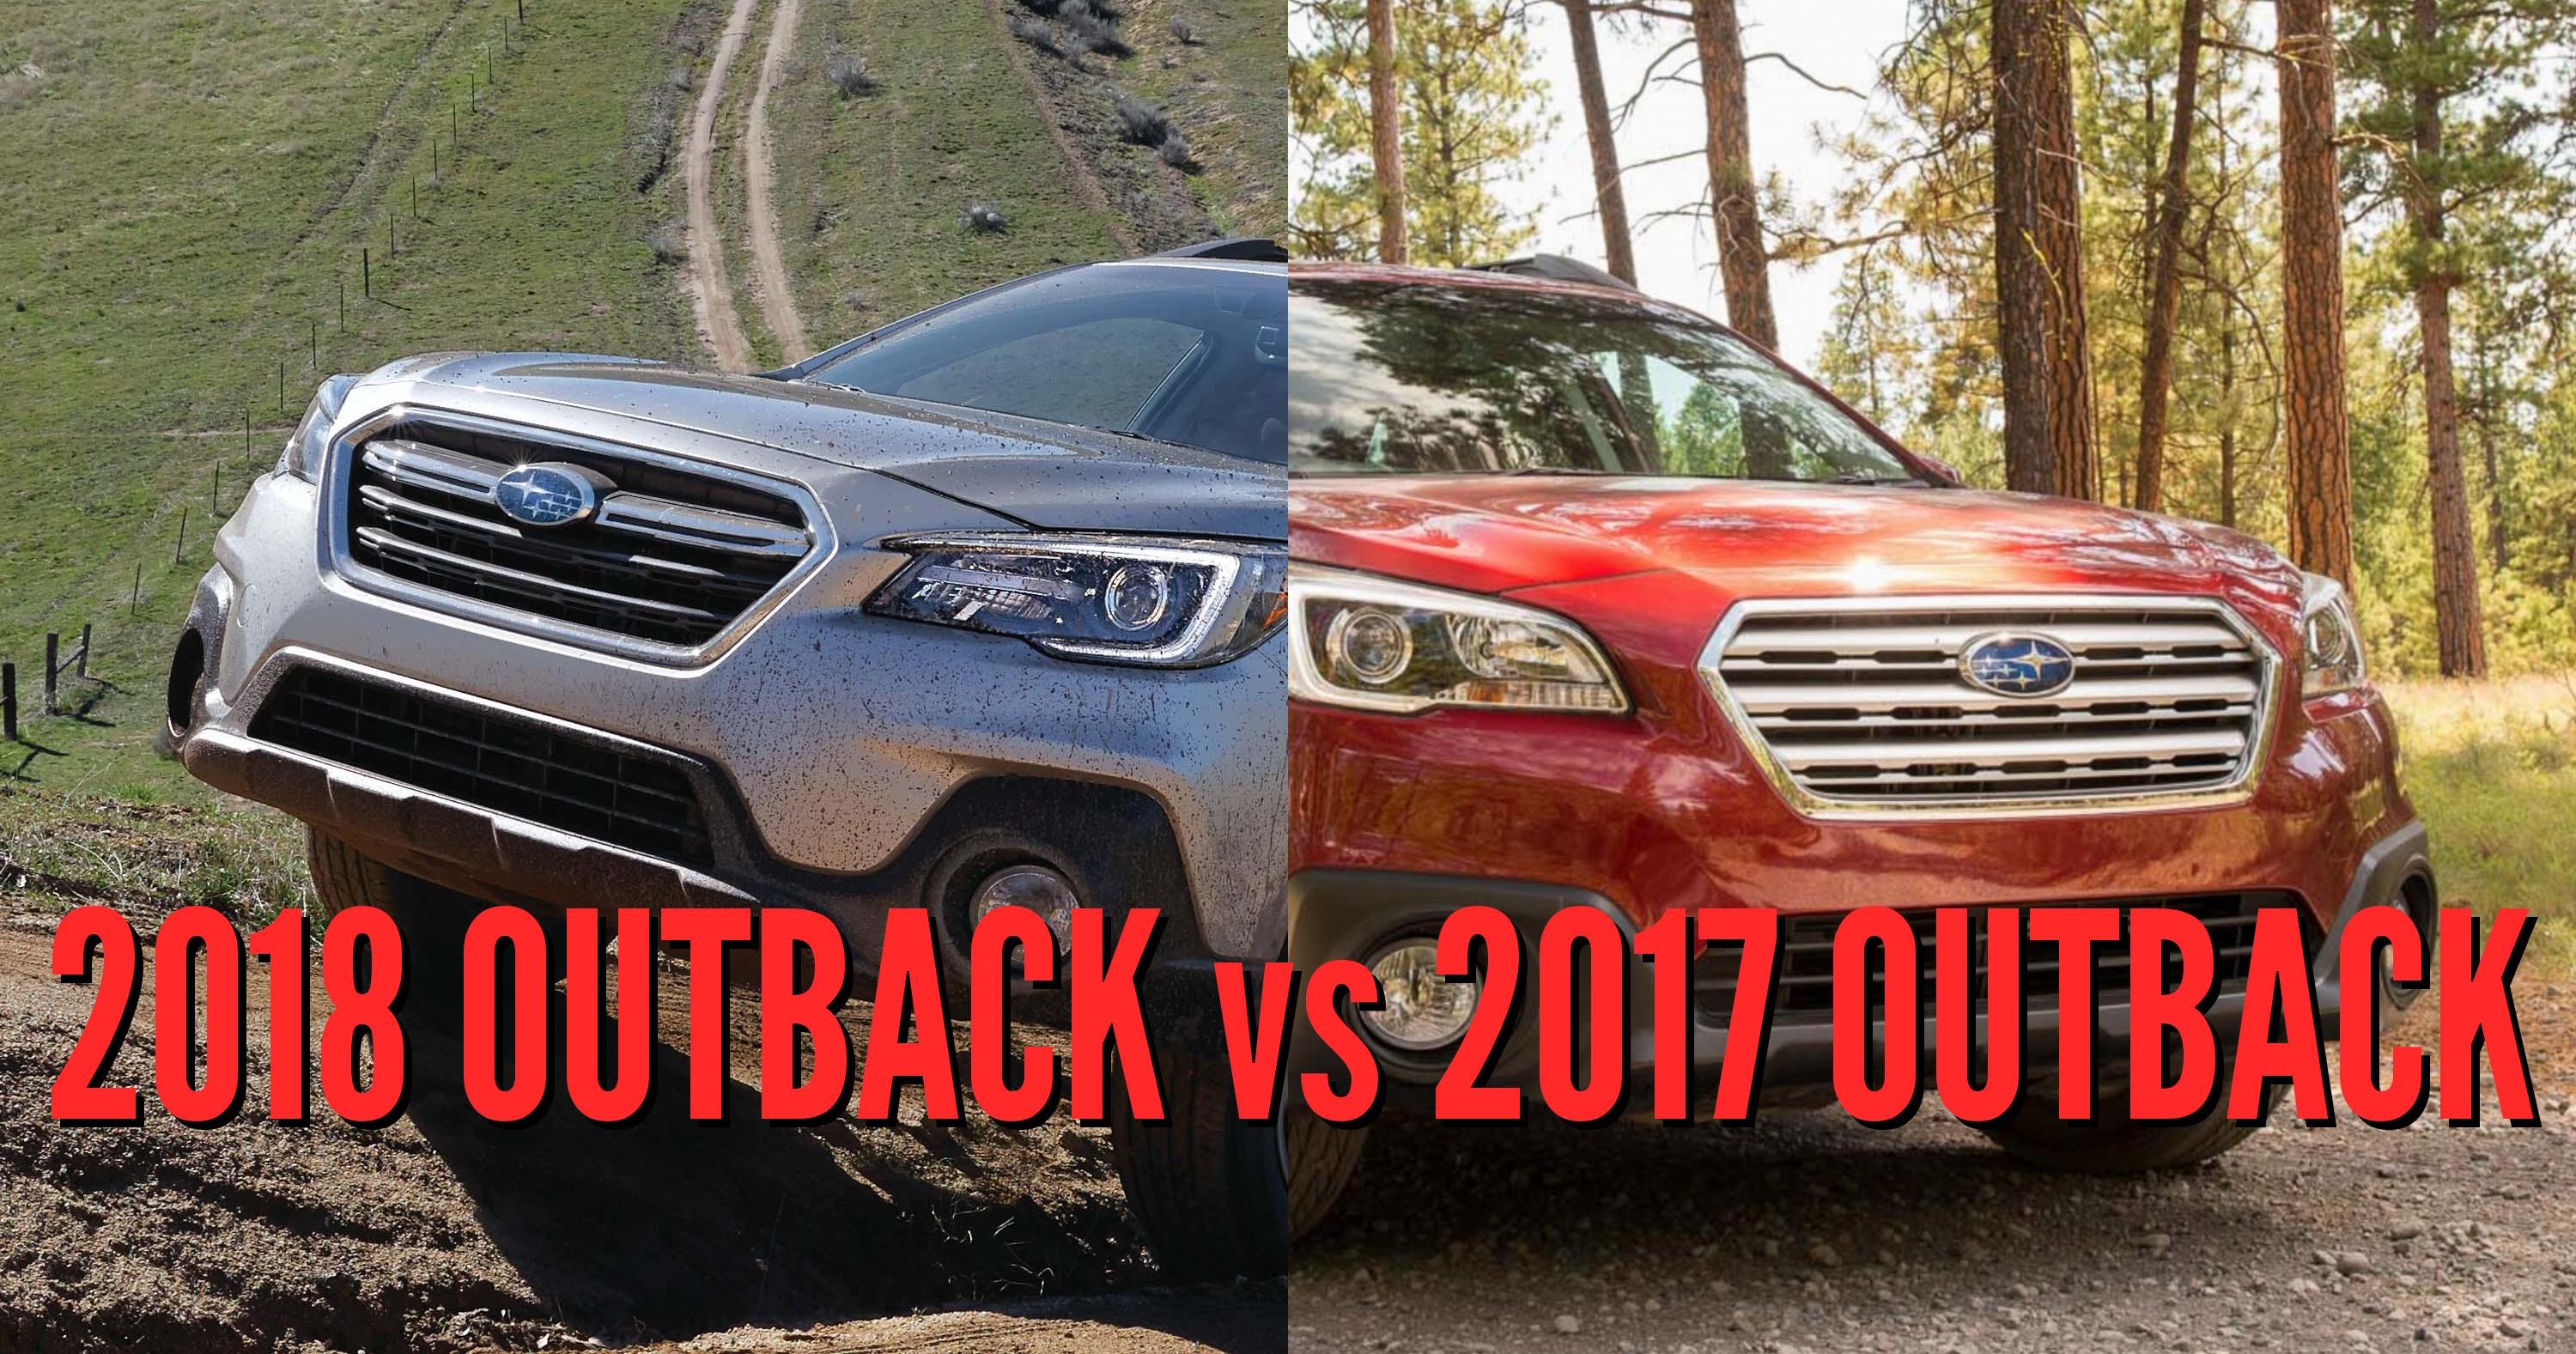 2018 Subaru Outback Vs 2017 See Facelift Changes In Photo Comparison Between The Axles